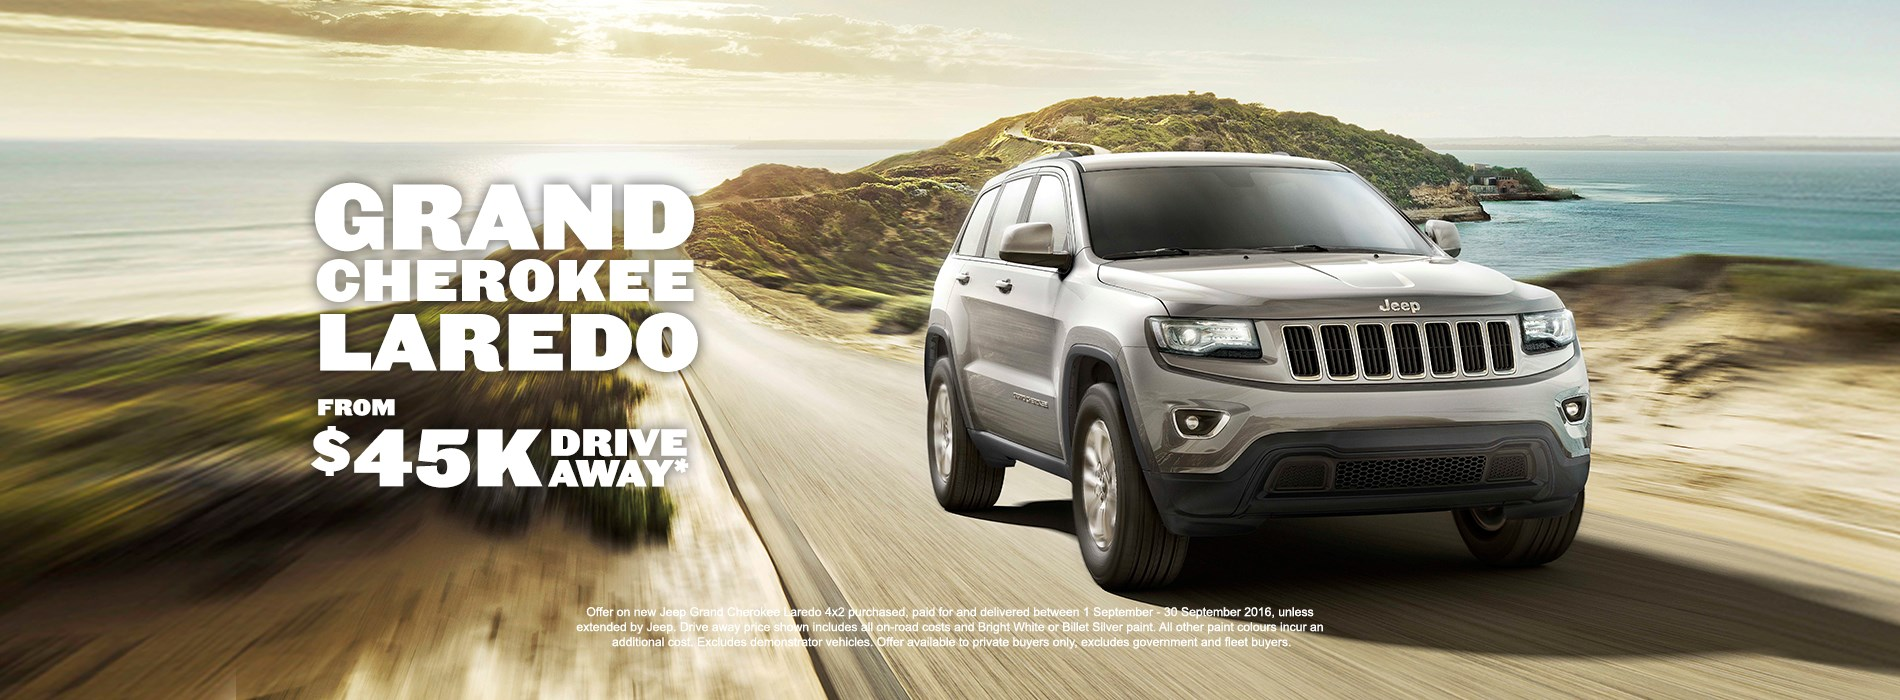 Jeep Grand Cherokee Laredo $45k Drive Away offer